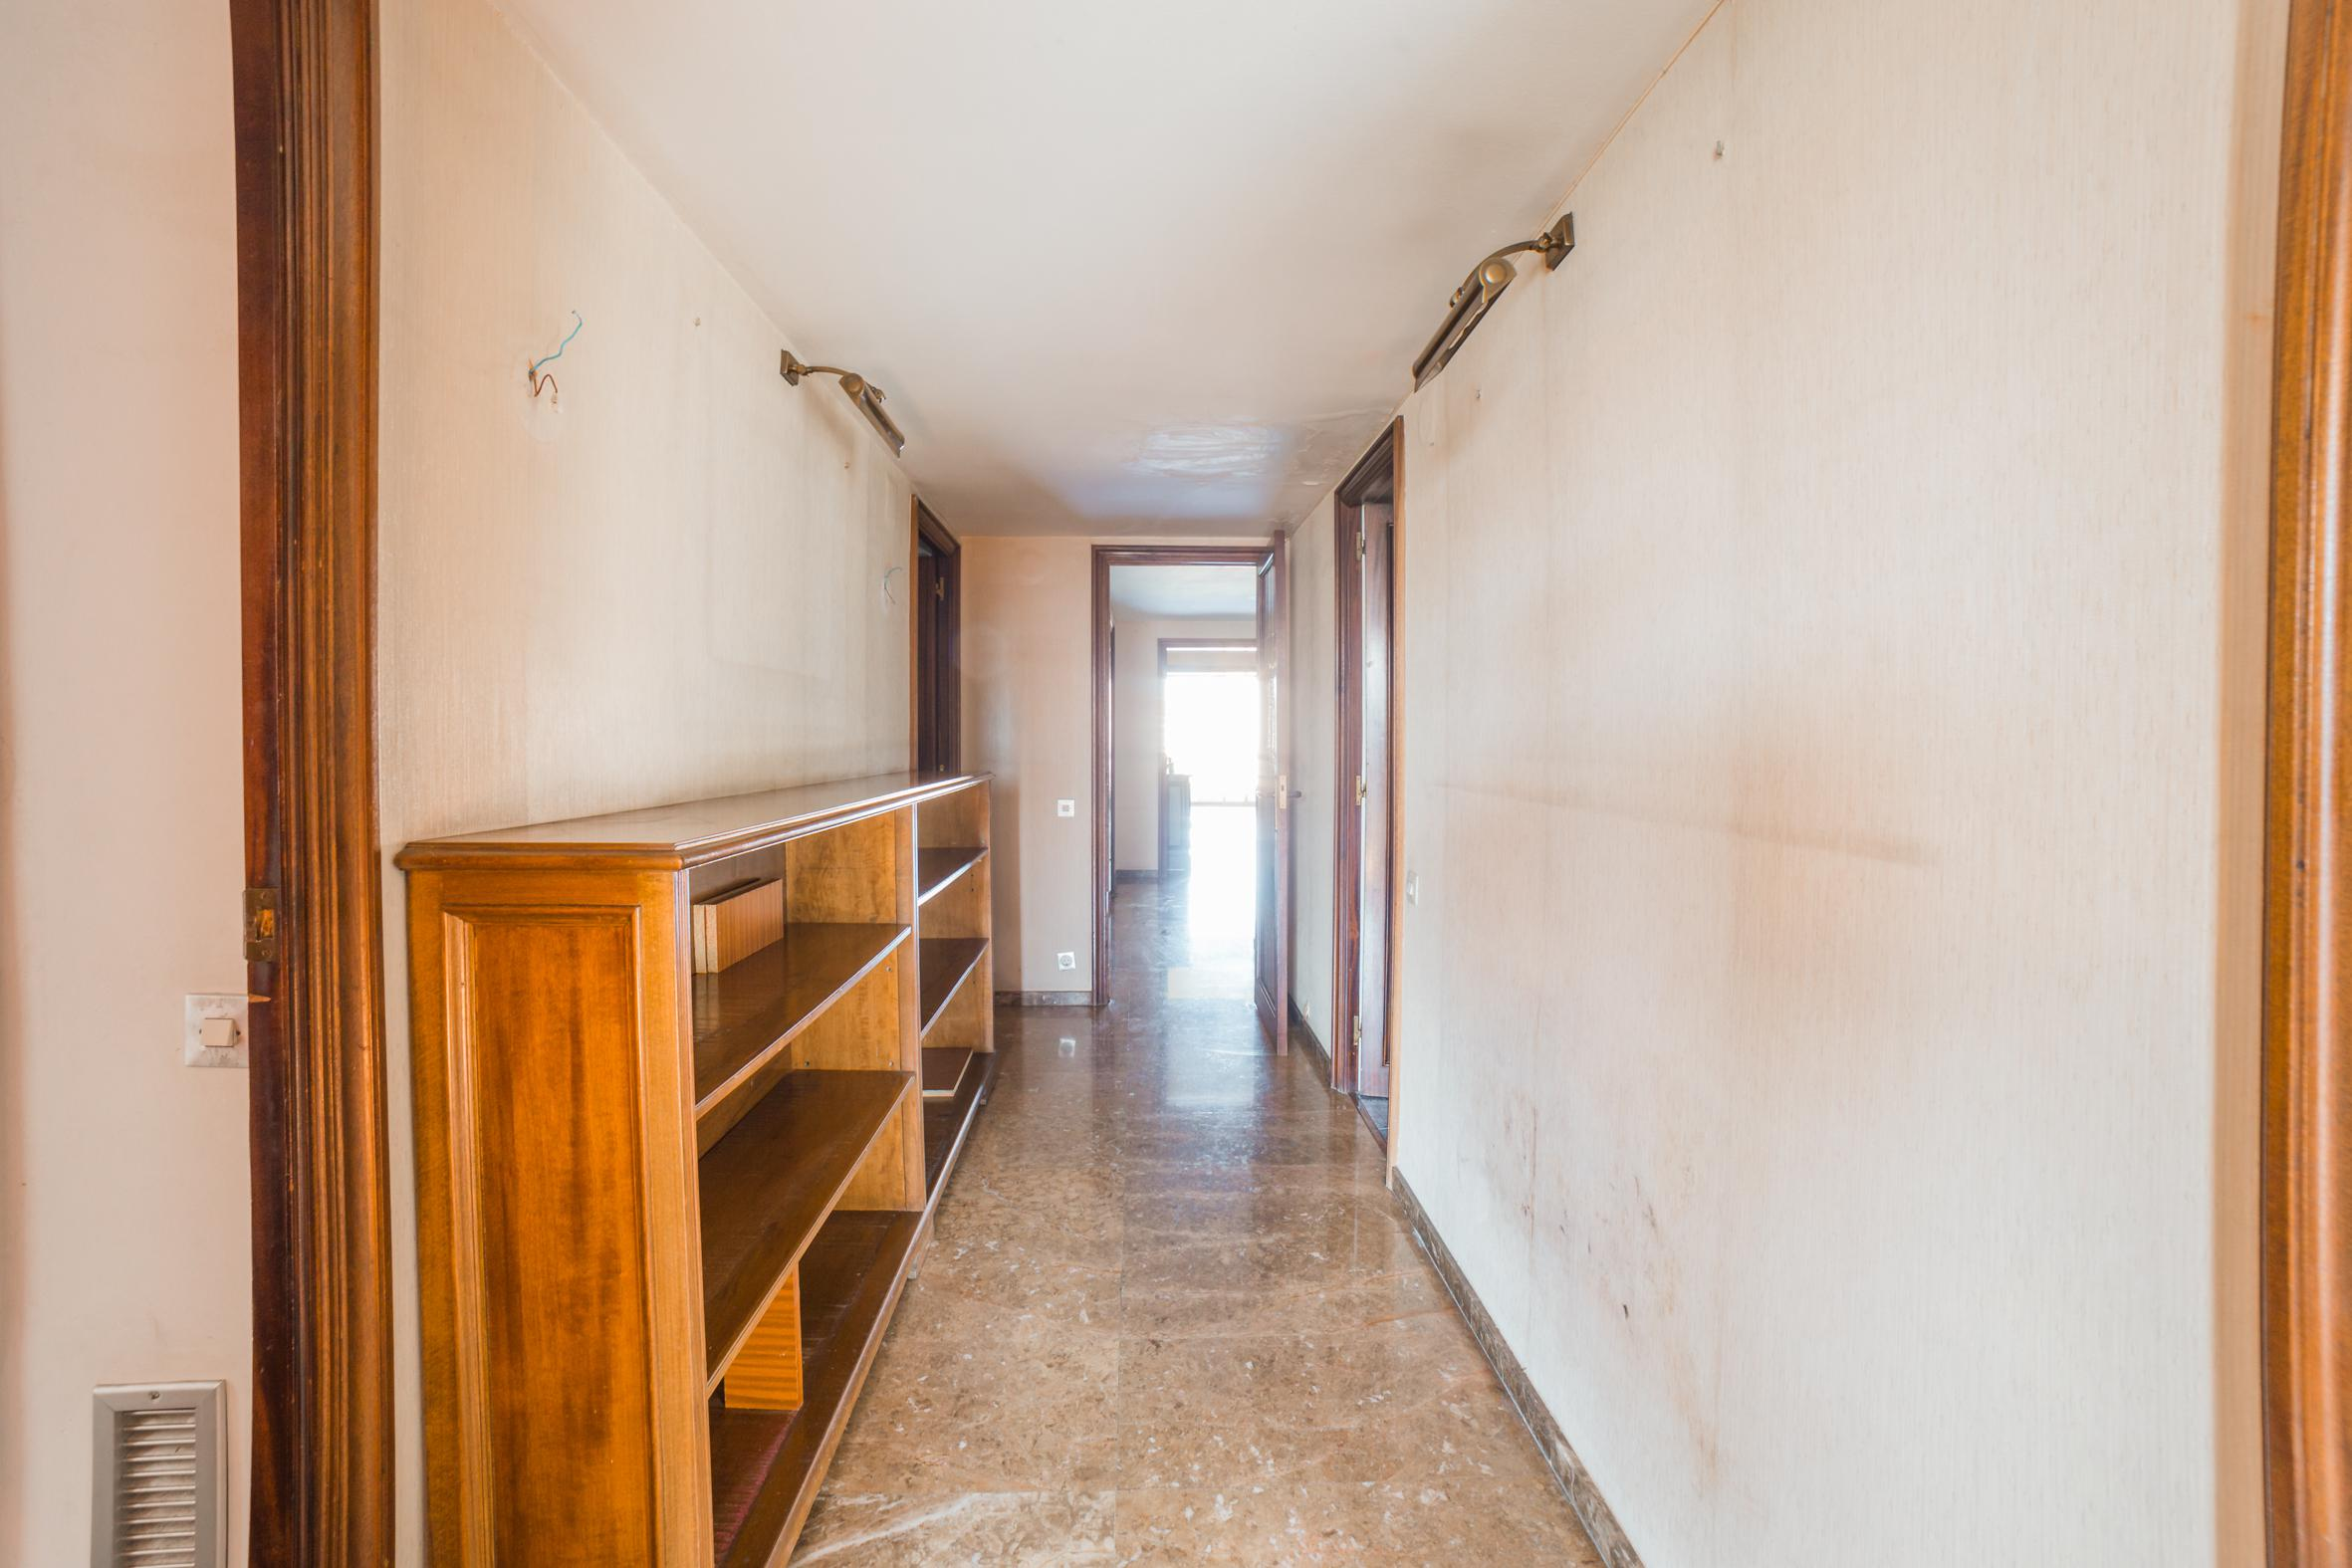 248988 Flat for sale in Les Corts, Les Corts 21